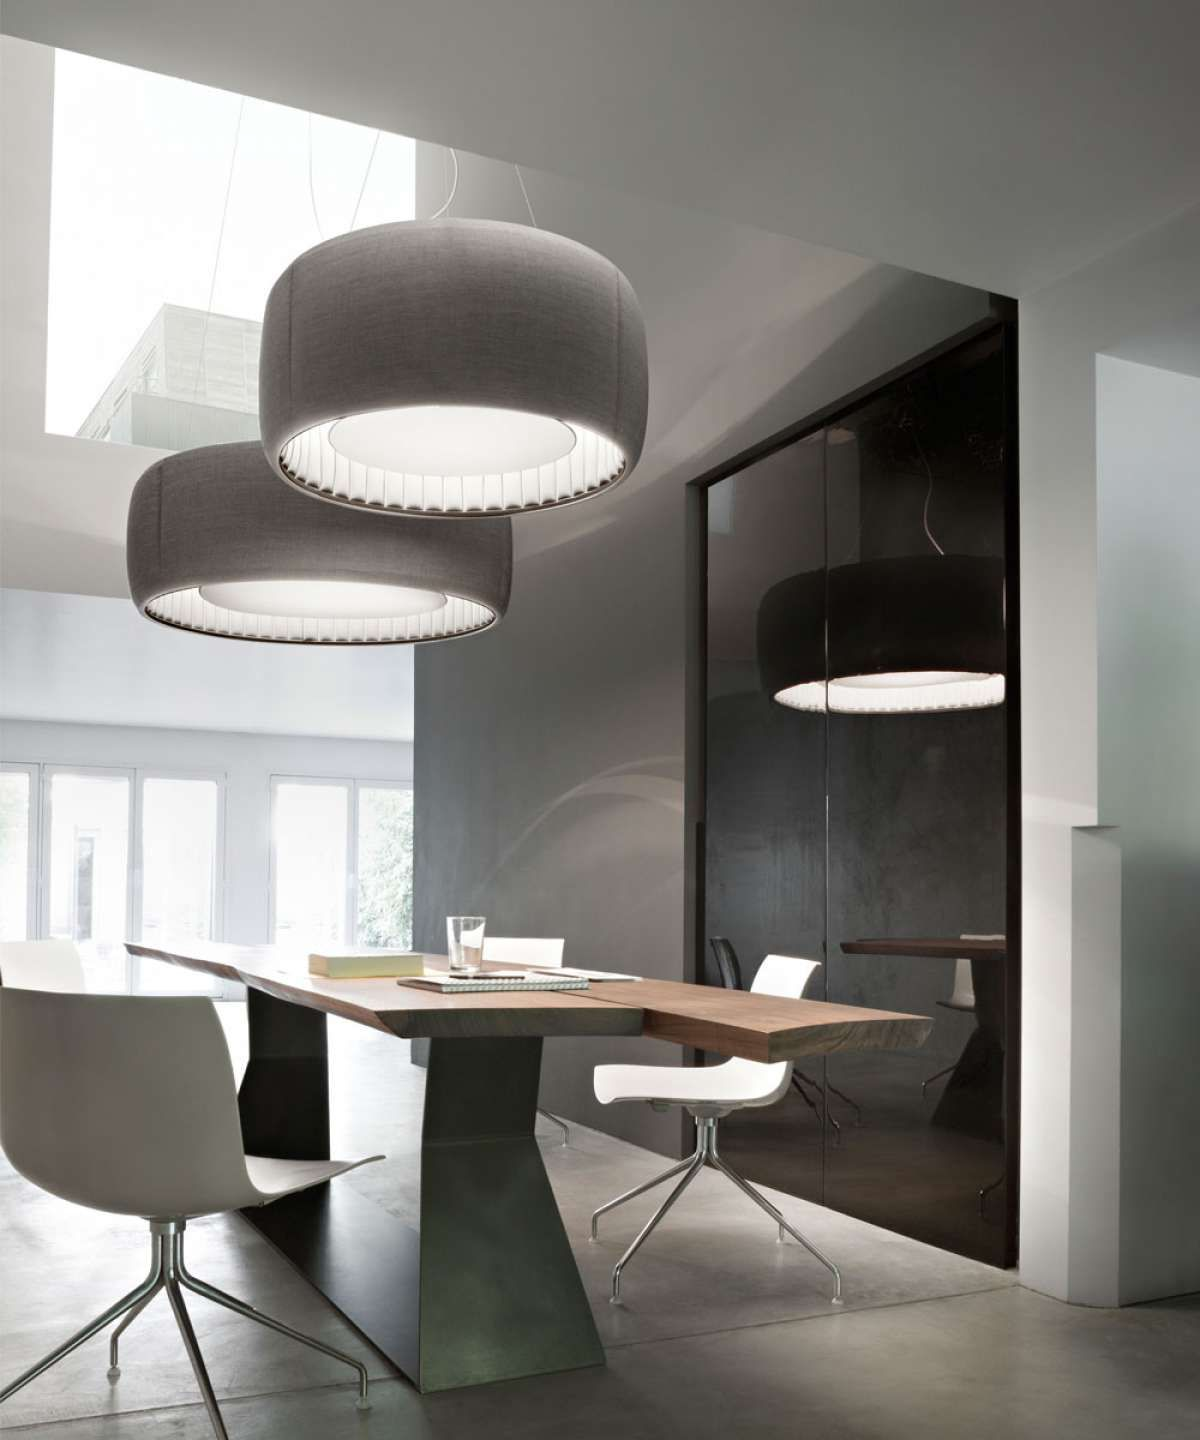 Silenzio this family of suspension lamps designed by monica armani offer quality lighting combined with acoustic comfort and the beauty of kvadrat